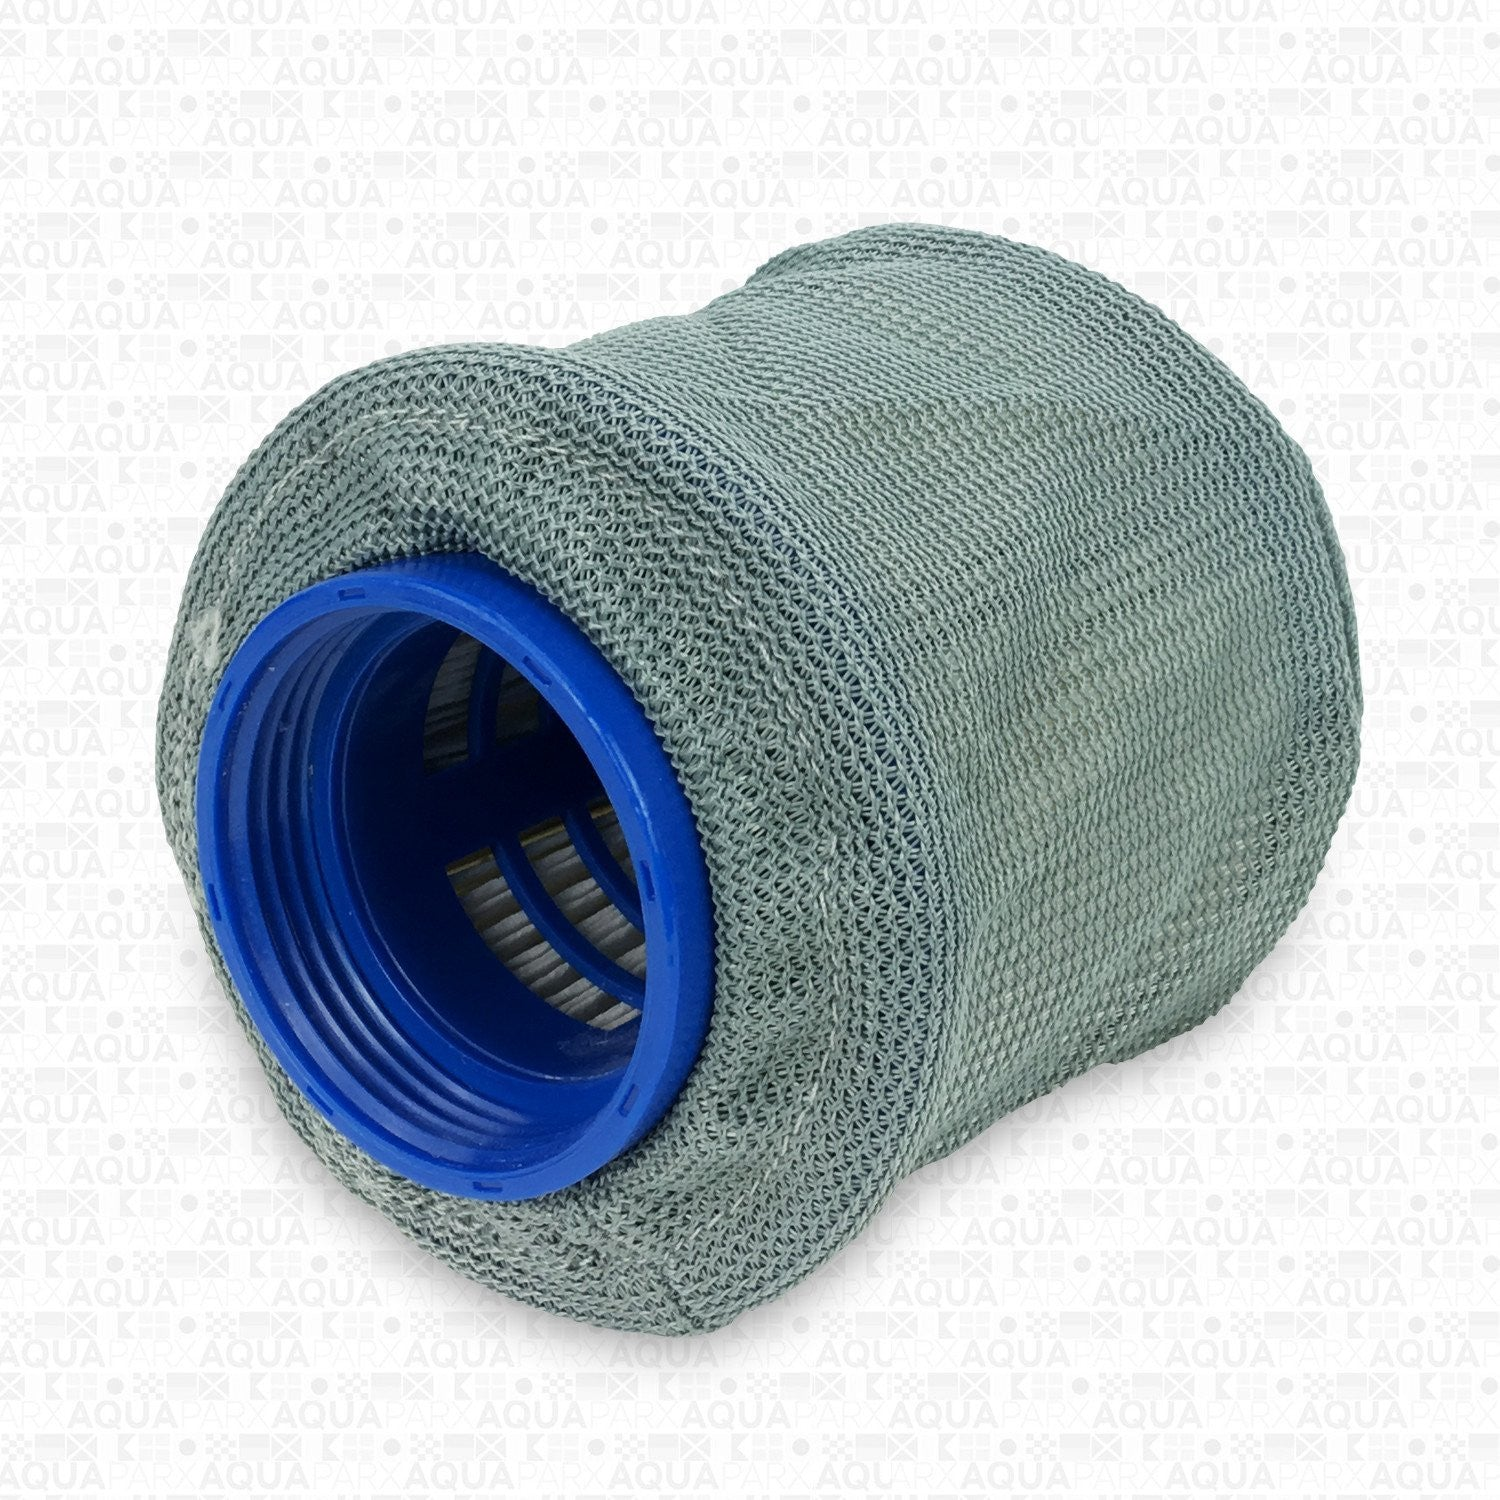 2 Spa Filter Cartridges - Ø 10 CM